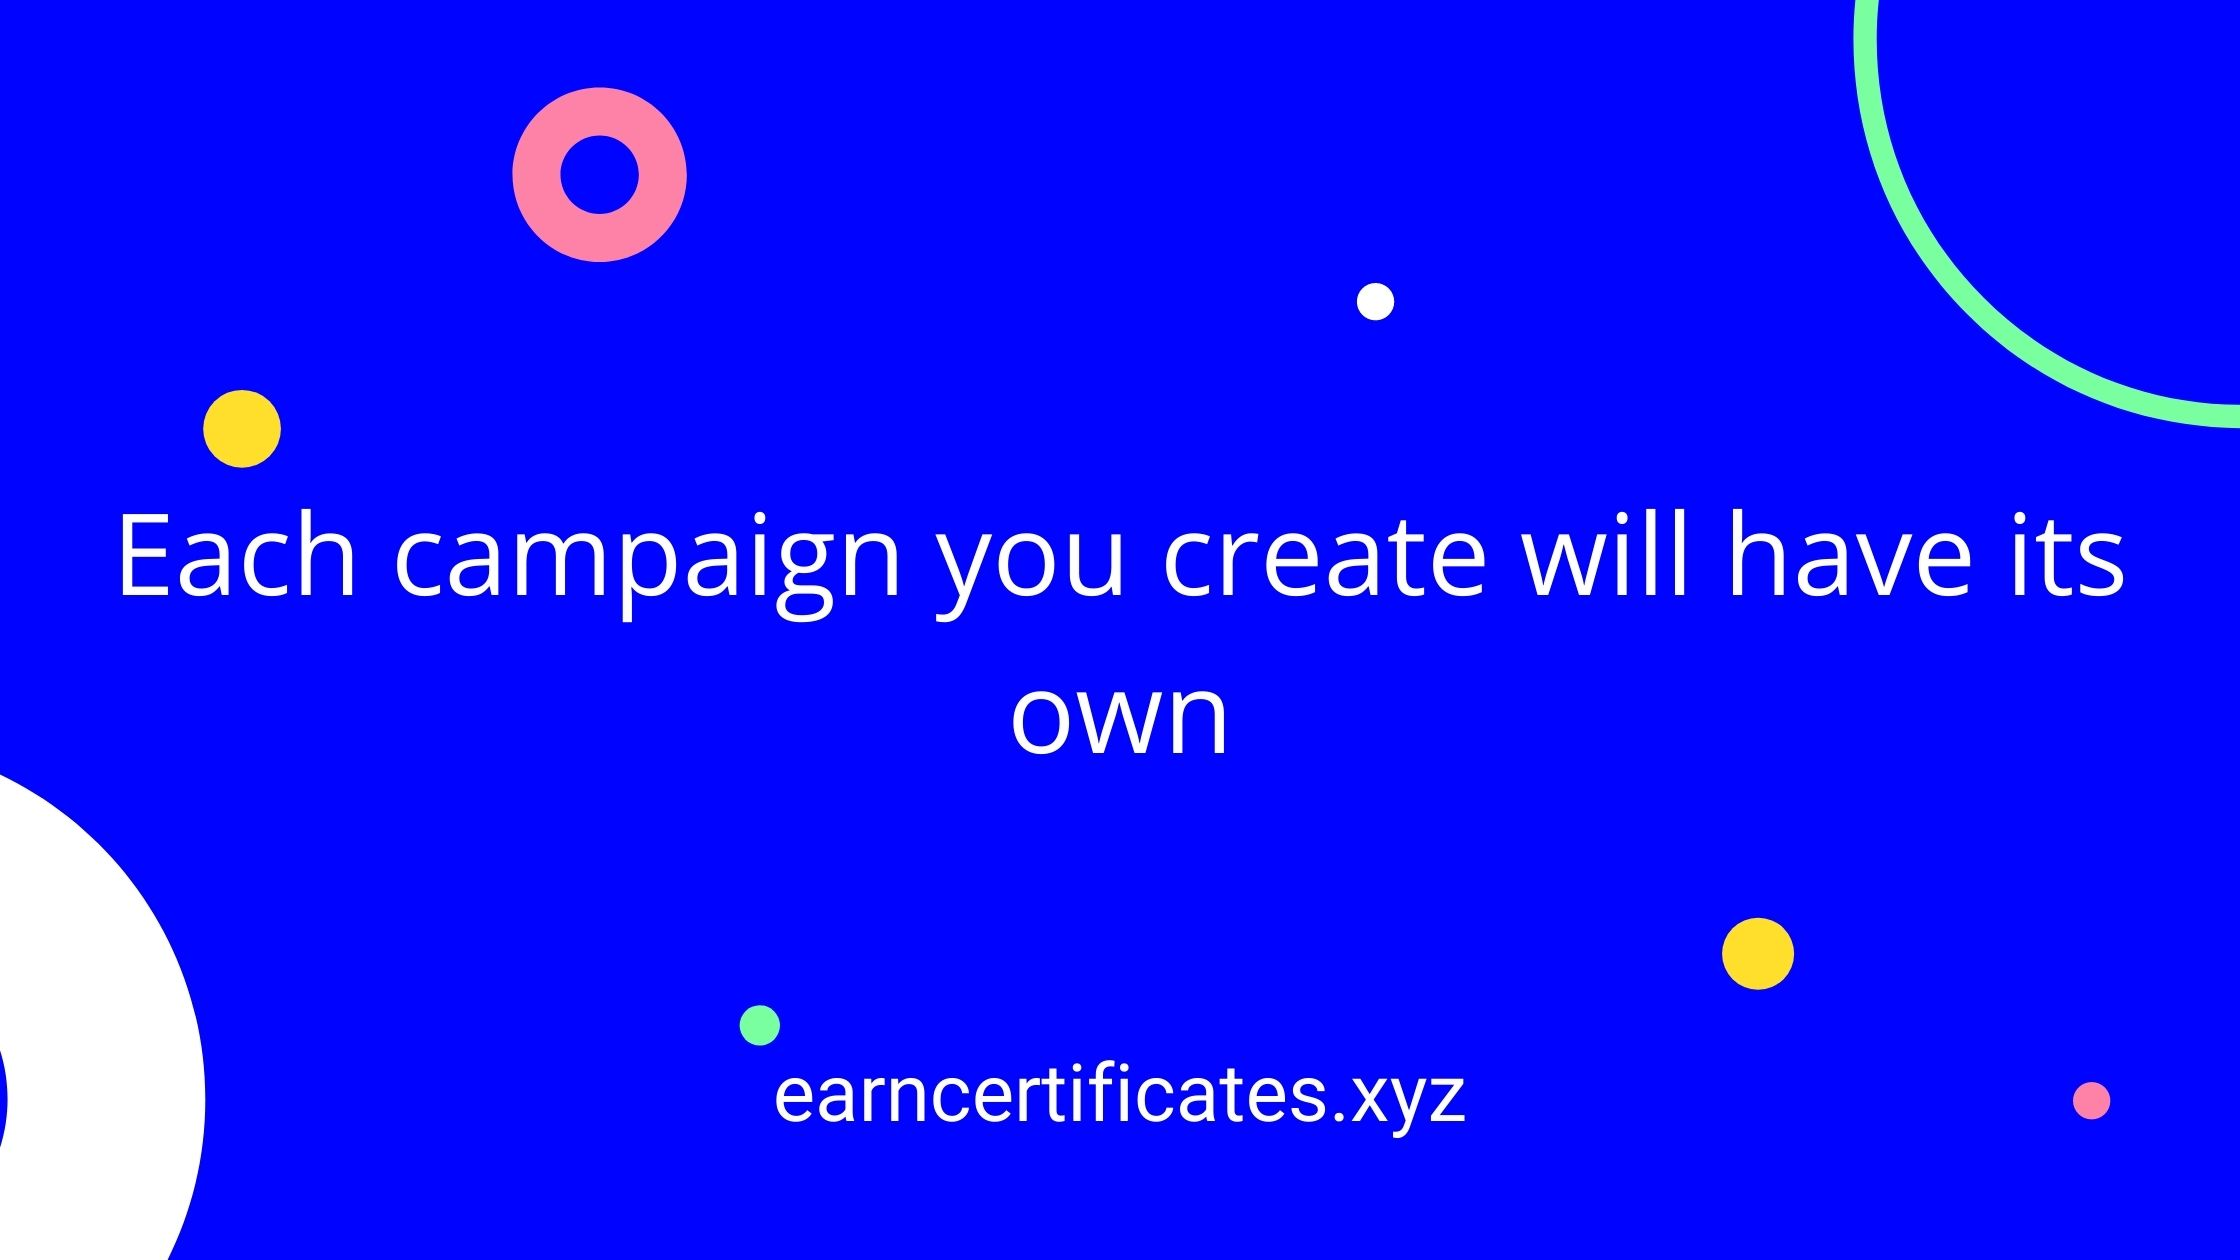 Each campaign you create will have its own